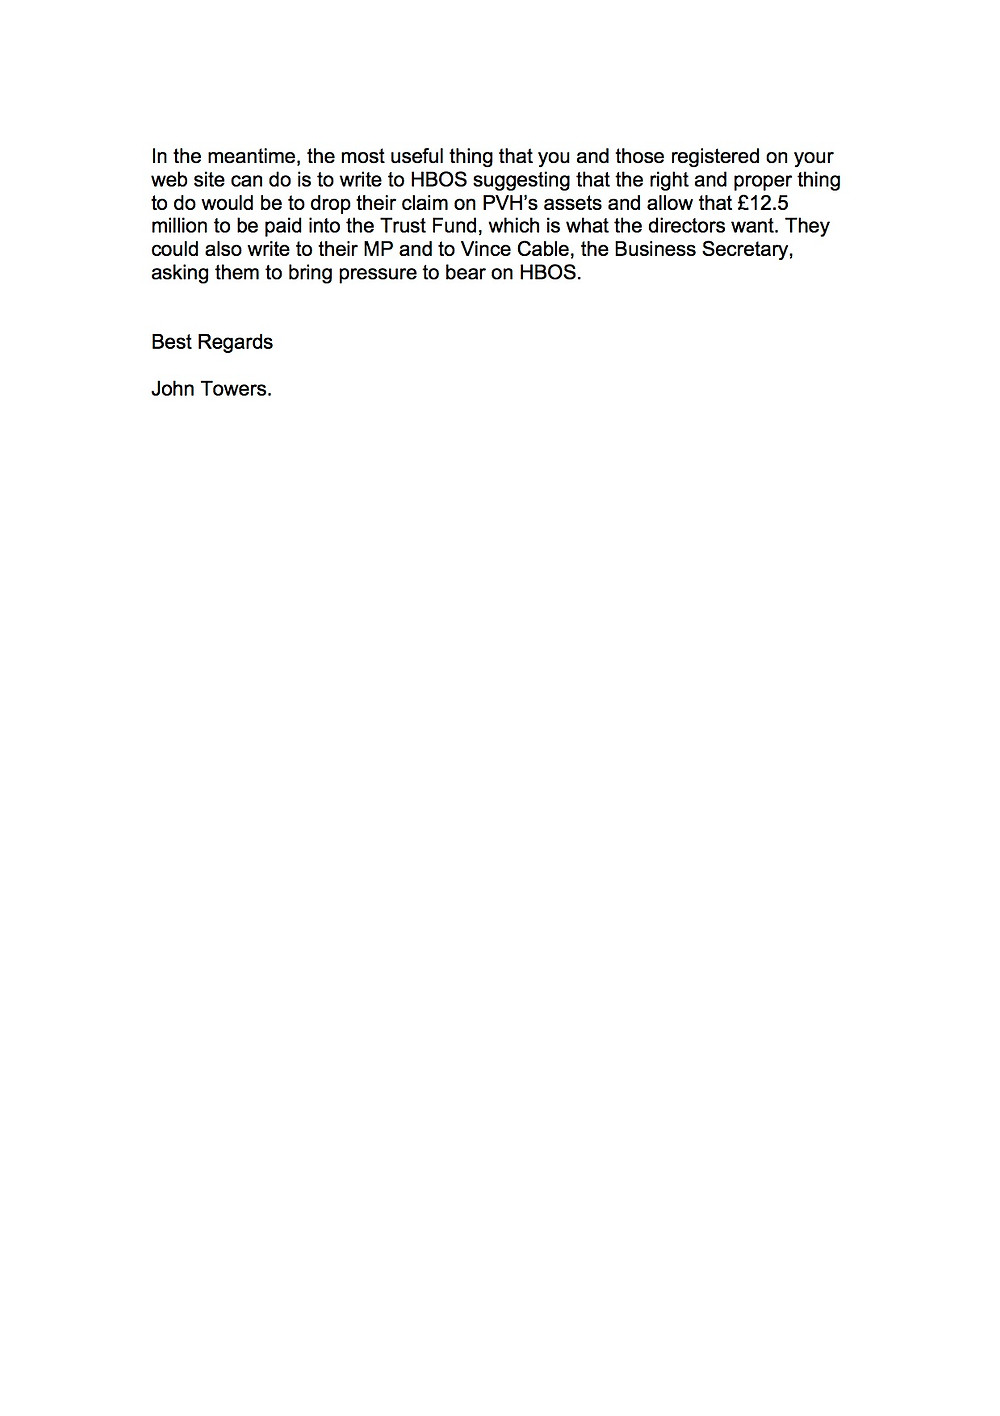 reply-from-john-towers-28th-may-2010-2.jpg